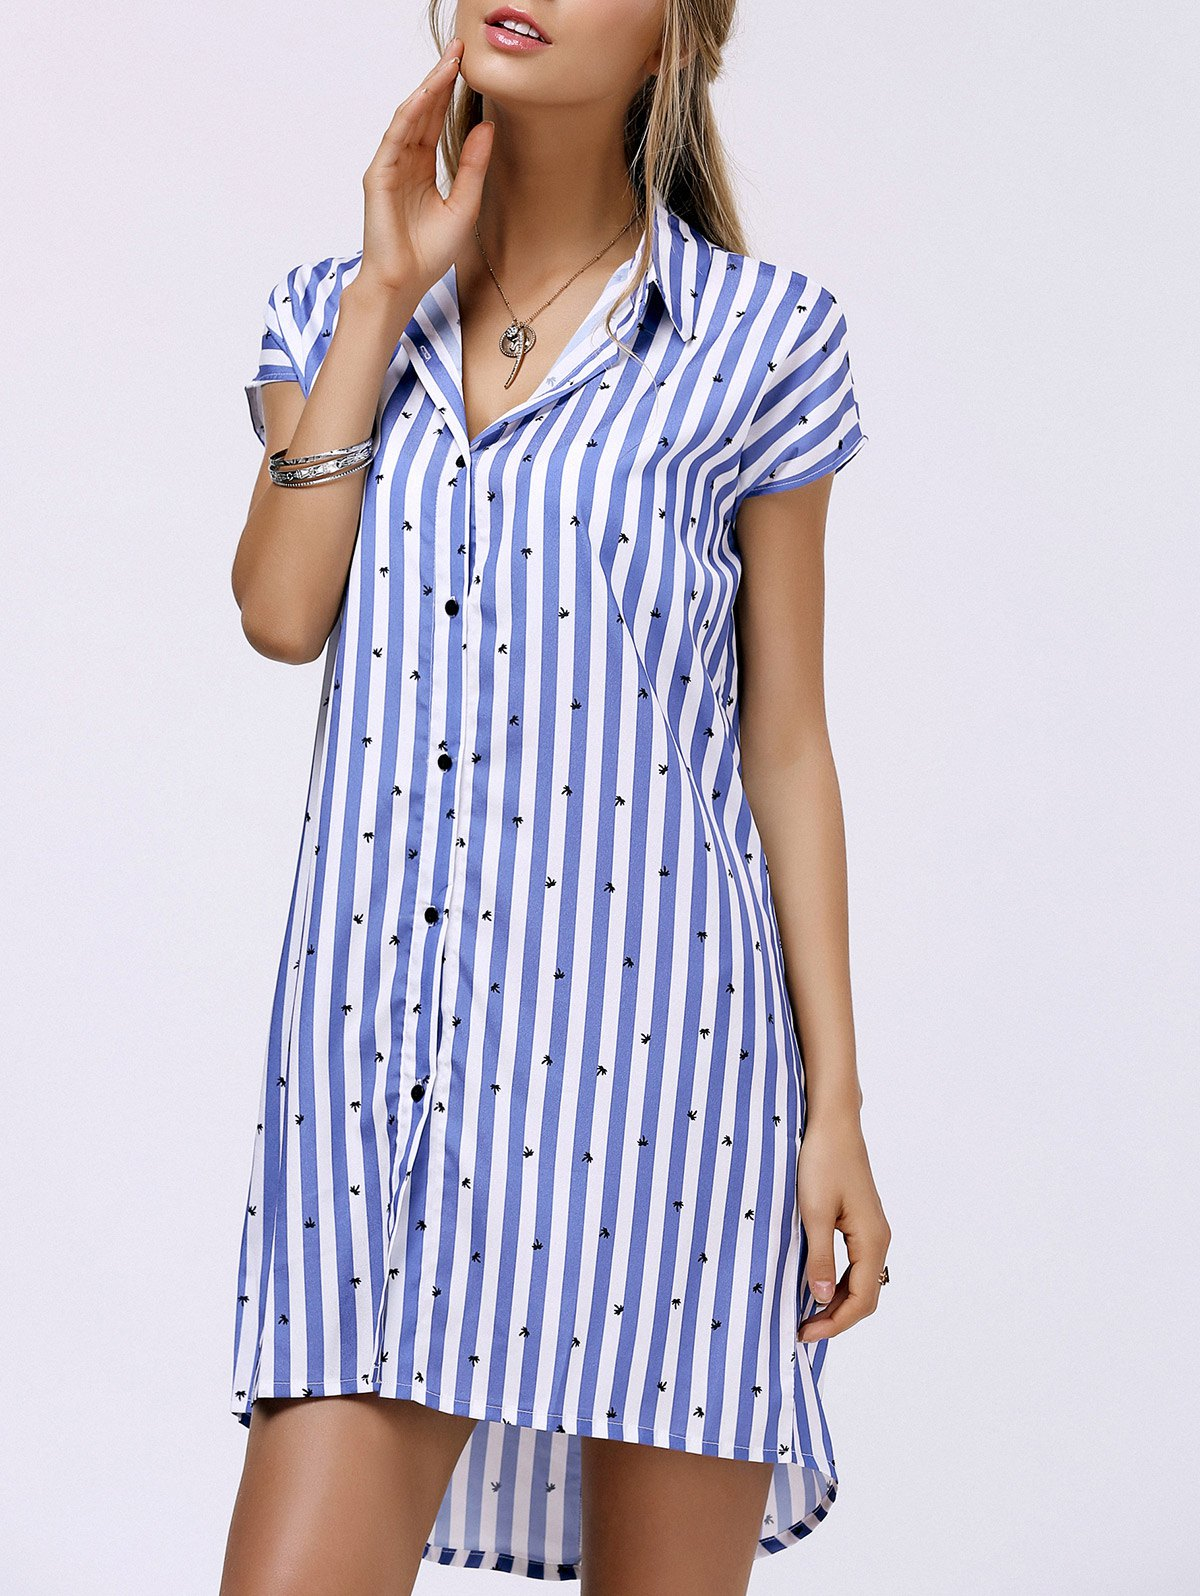 Fashionable Women's Shirt Collar Striped High Low Dress - BLUE L